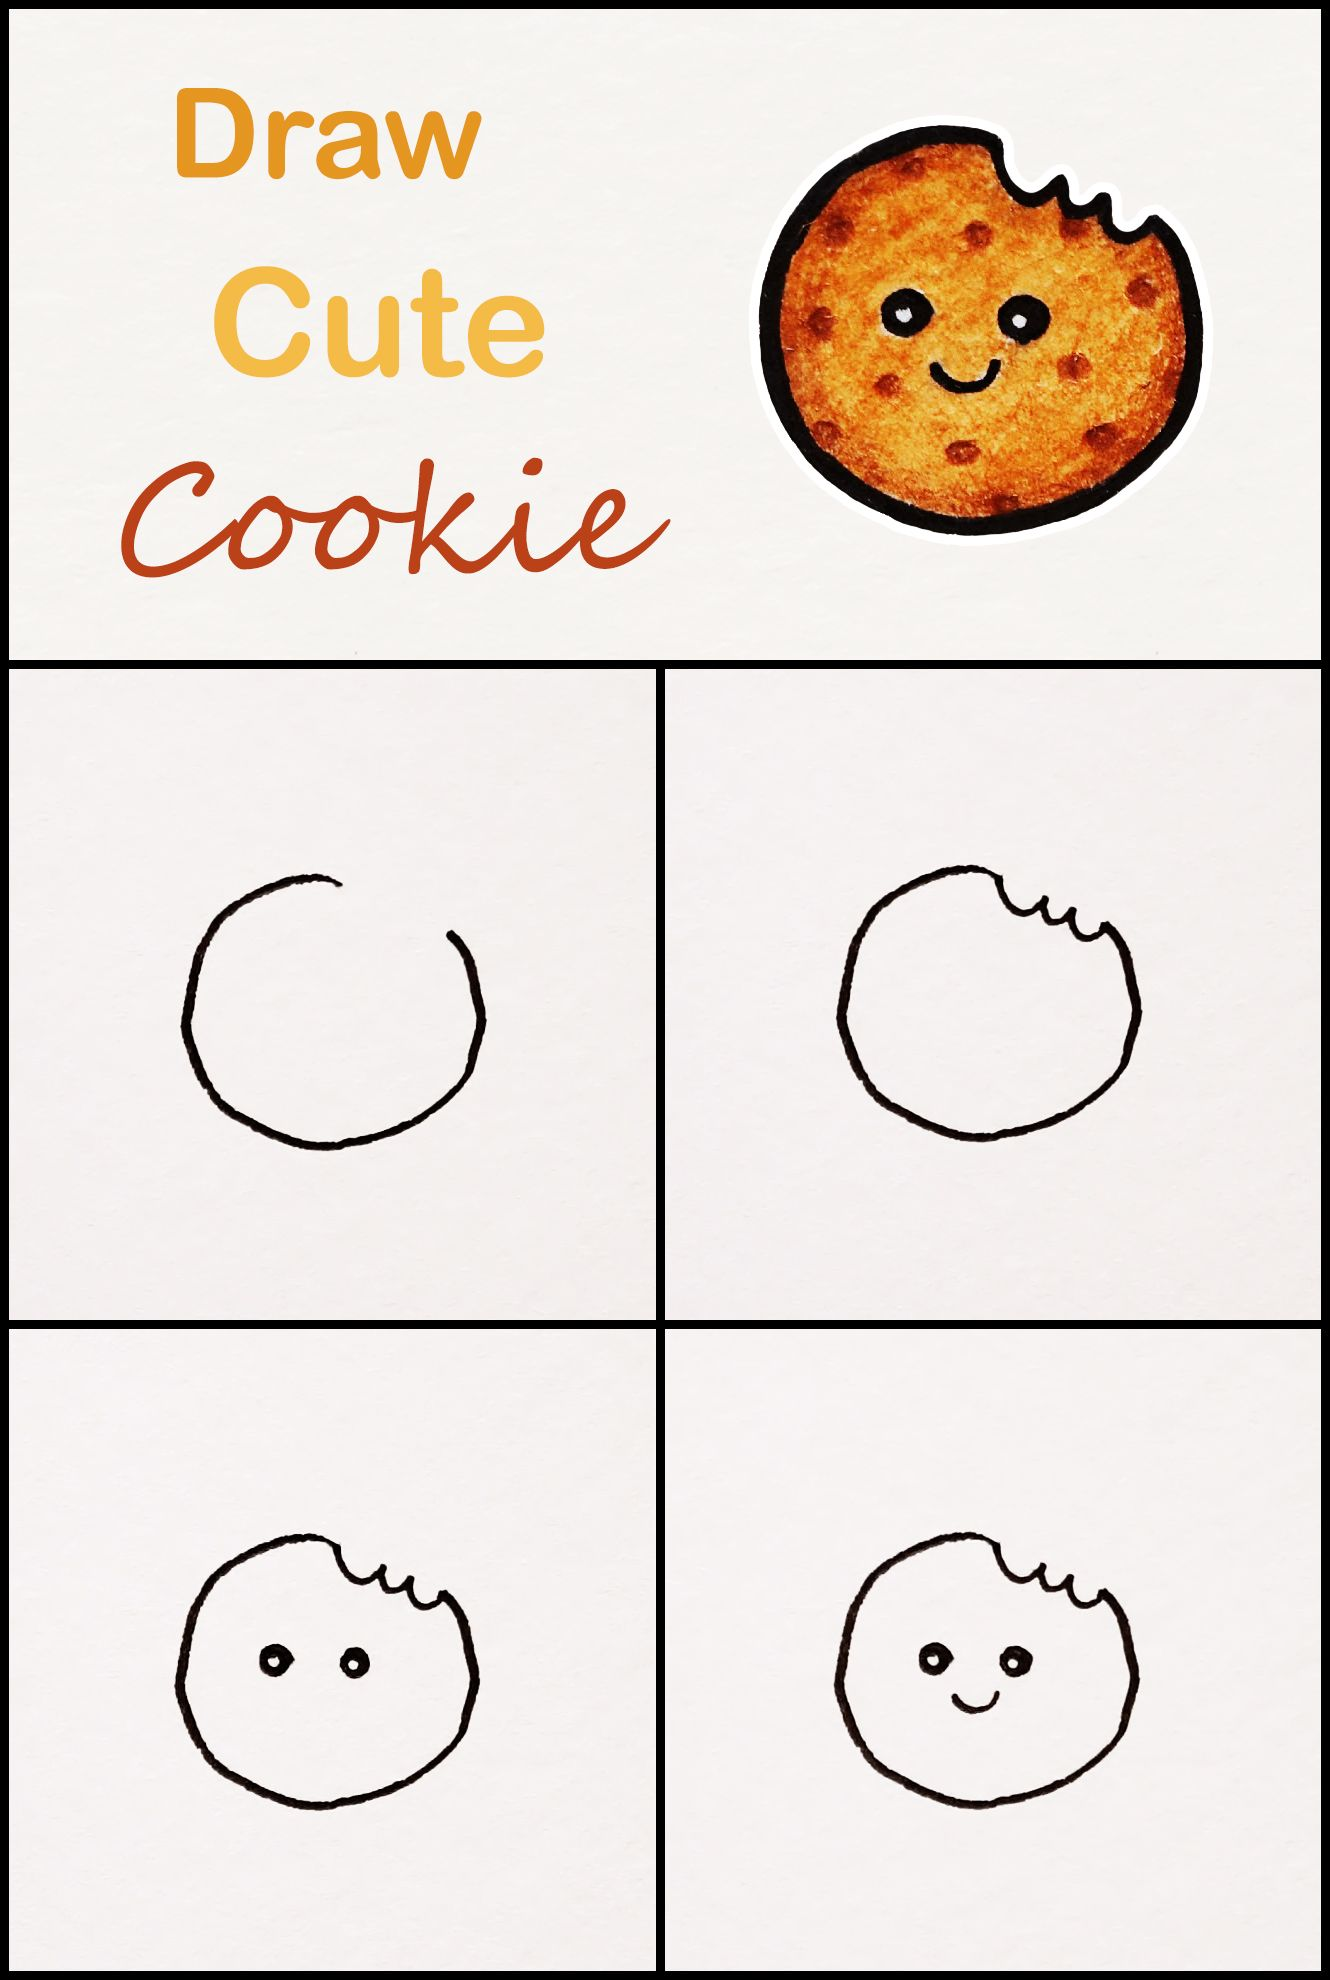 Learn How To Draw A Cute Cookie Step By Step Very Simple Tutorial Cookie Drawings Kawaii Tutori Cute Easy Drawings Art Drawings For Kids Drawing Tutorial